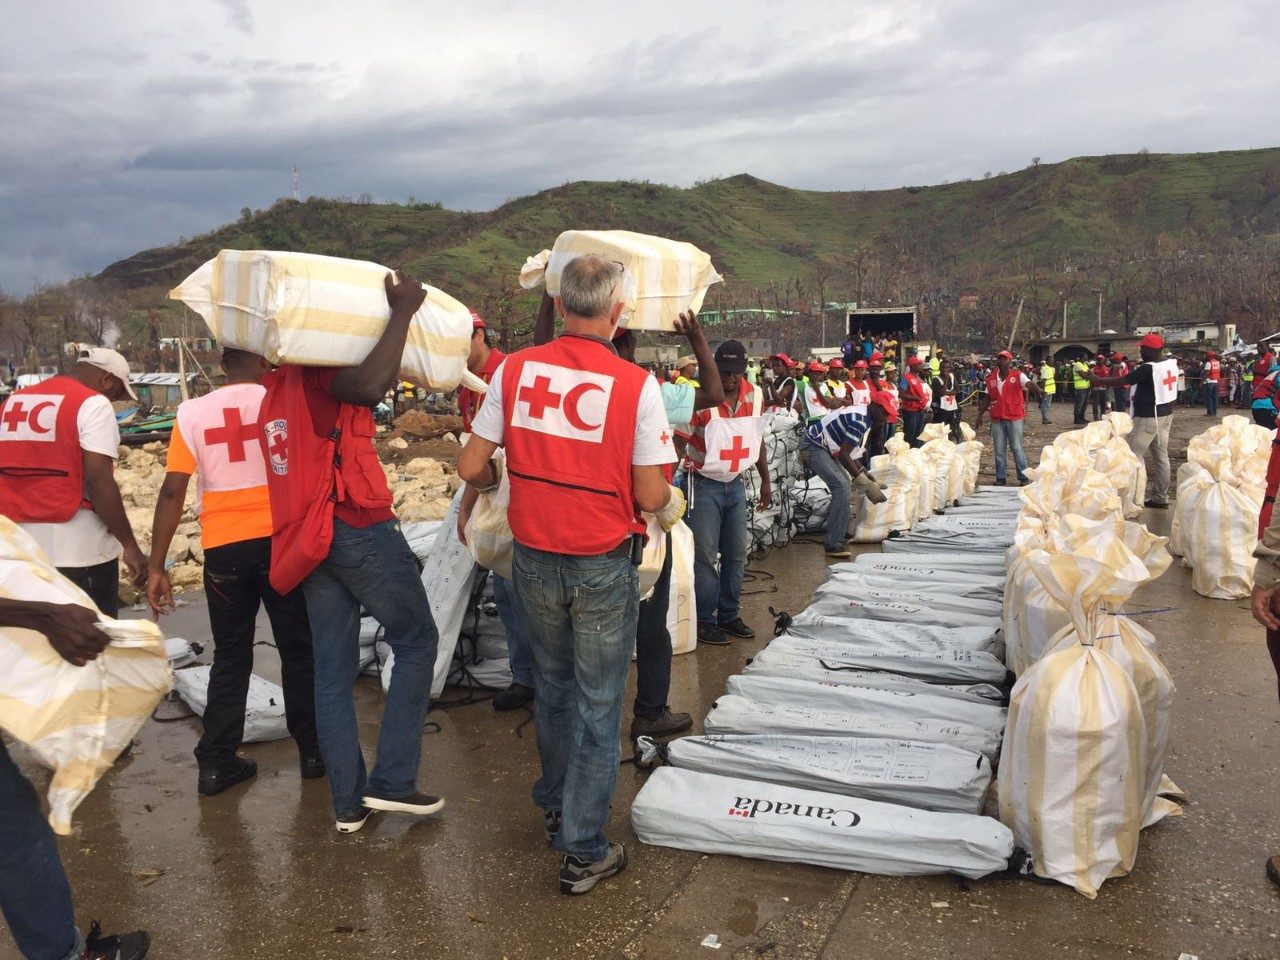 Red Cross volunteers distribute supplies to people affected by earthquake in Haiti